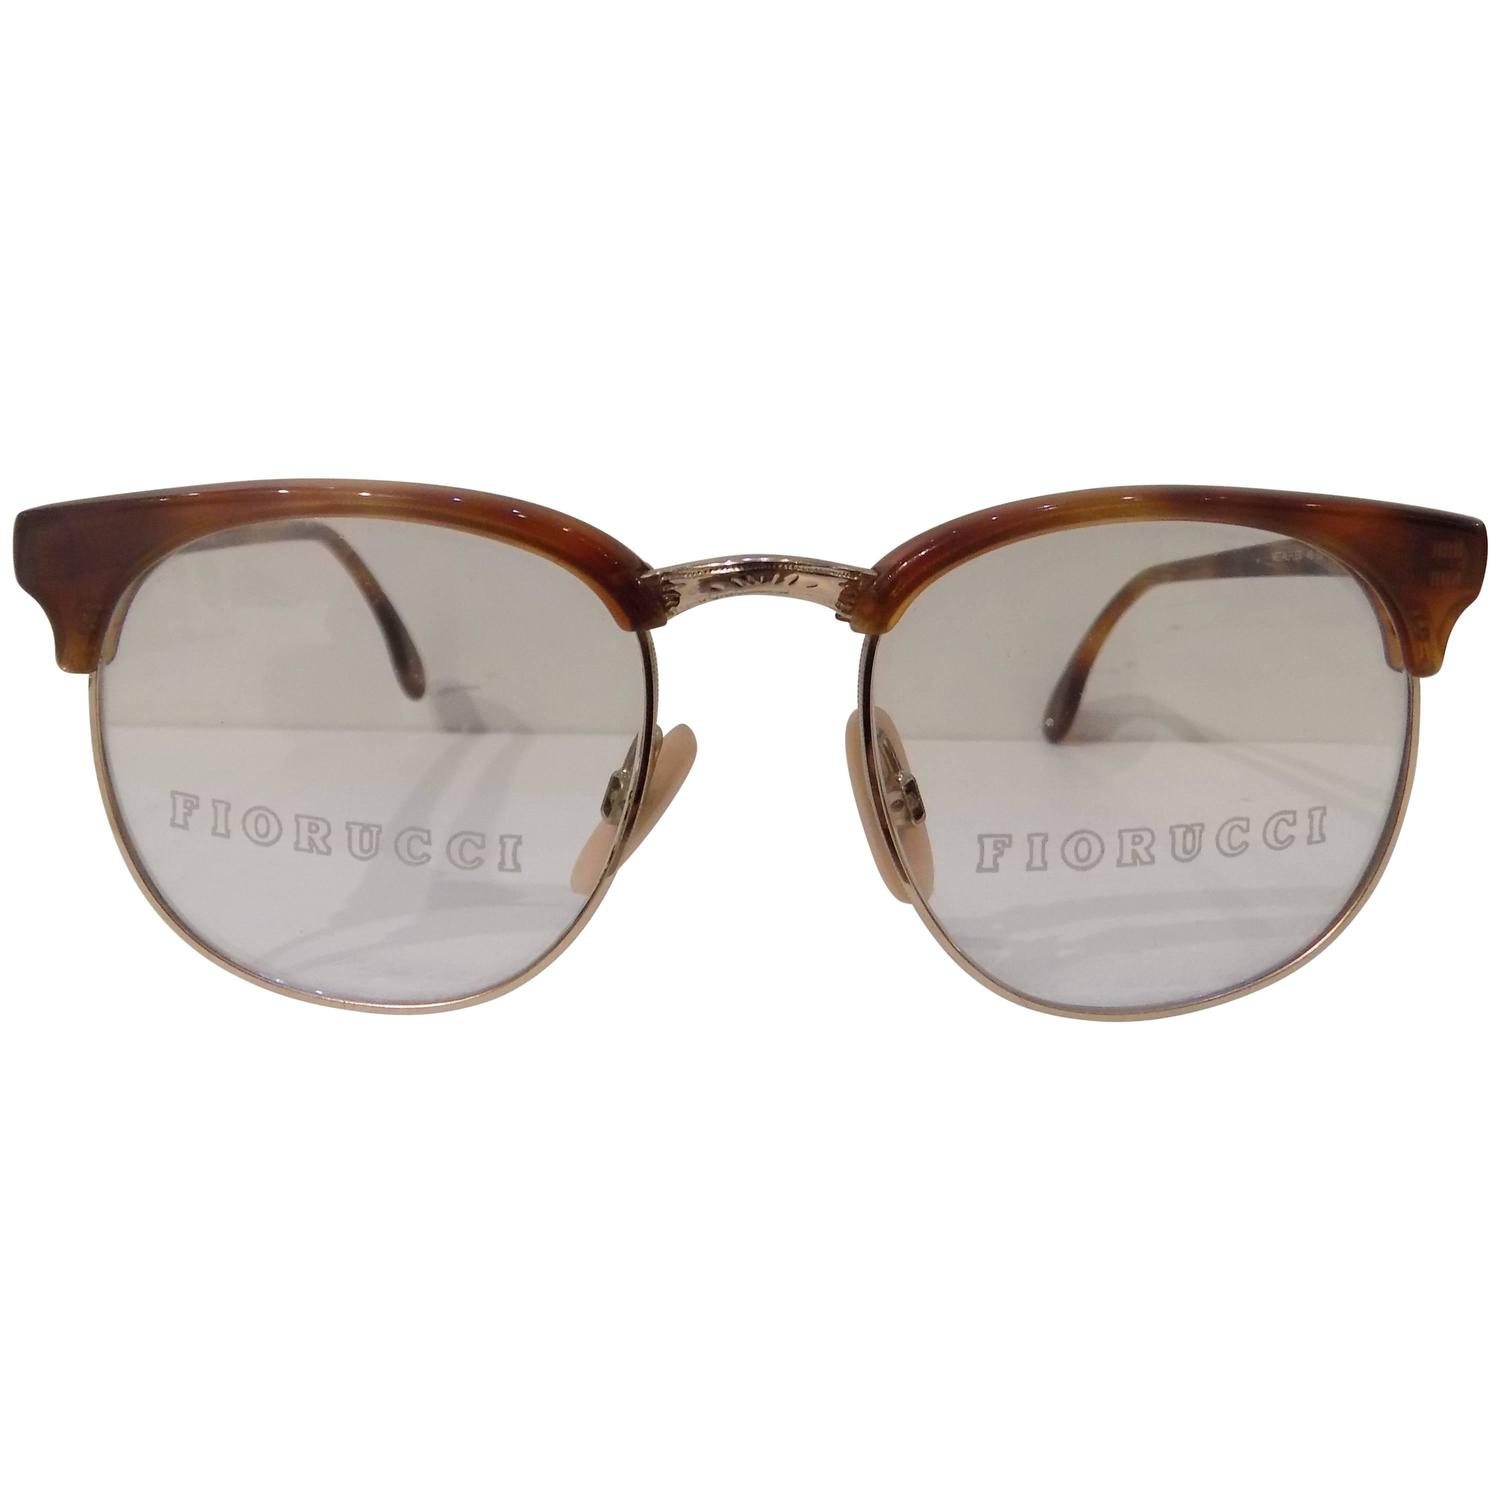 1990s Fiorucci brown tone frame glasses For Sale at 1stdibs